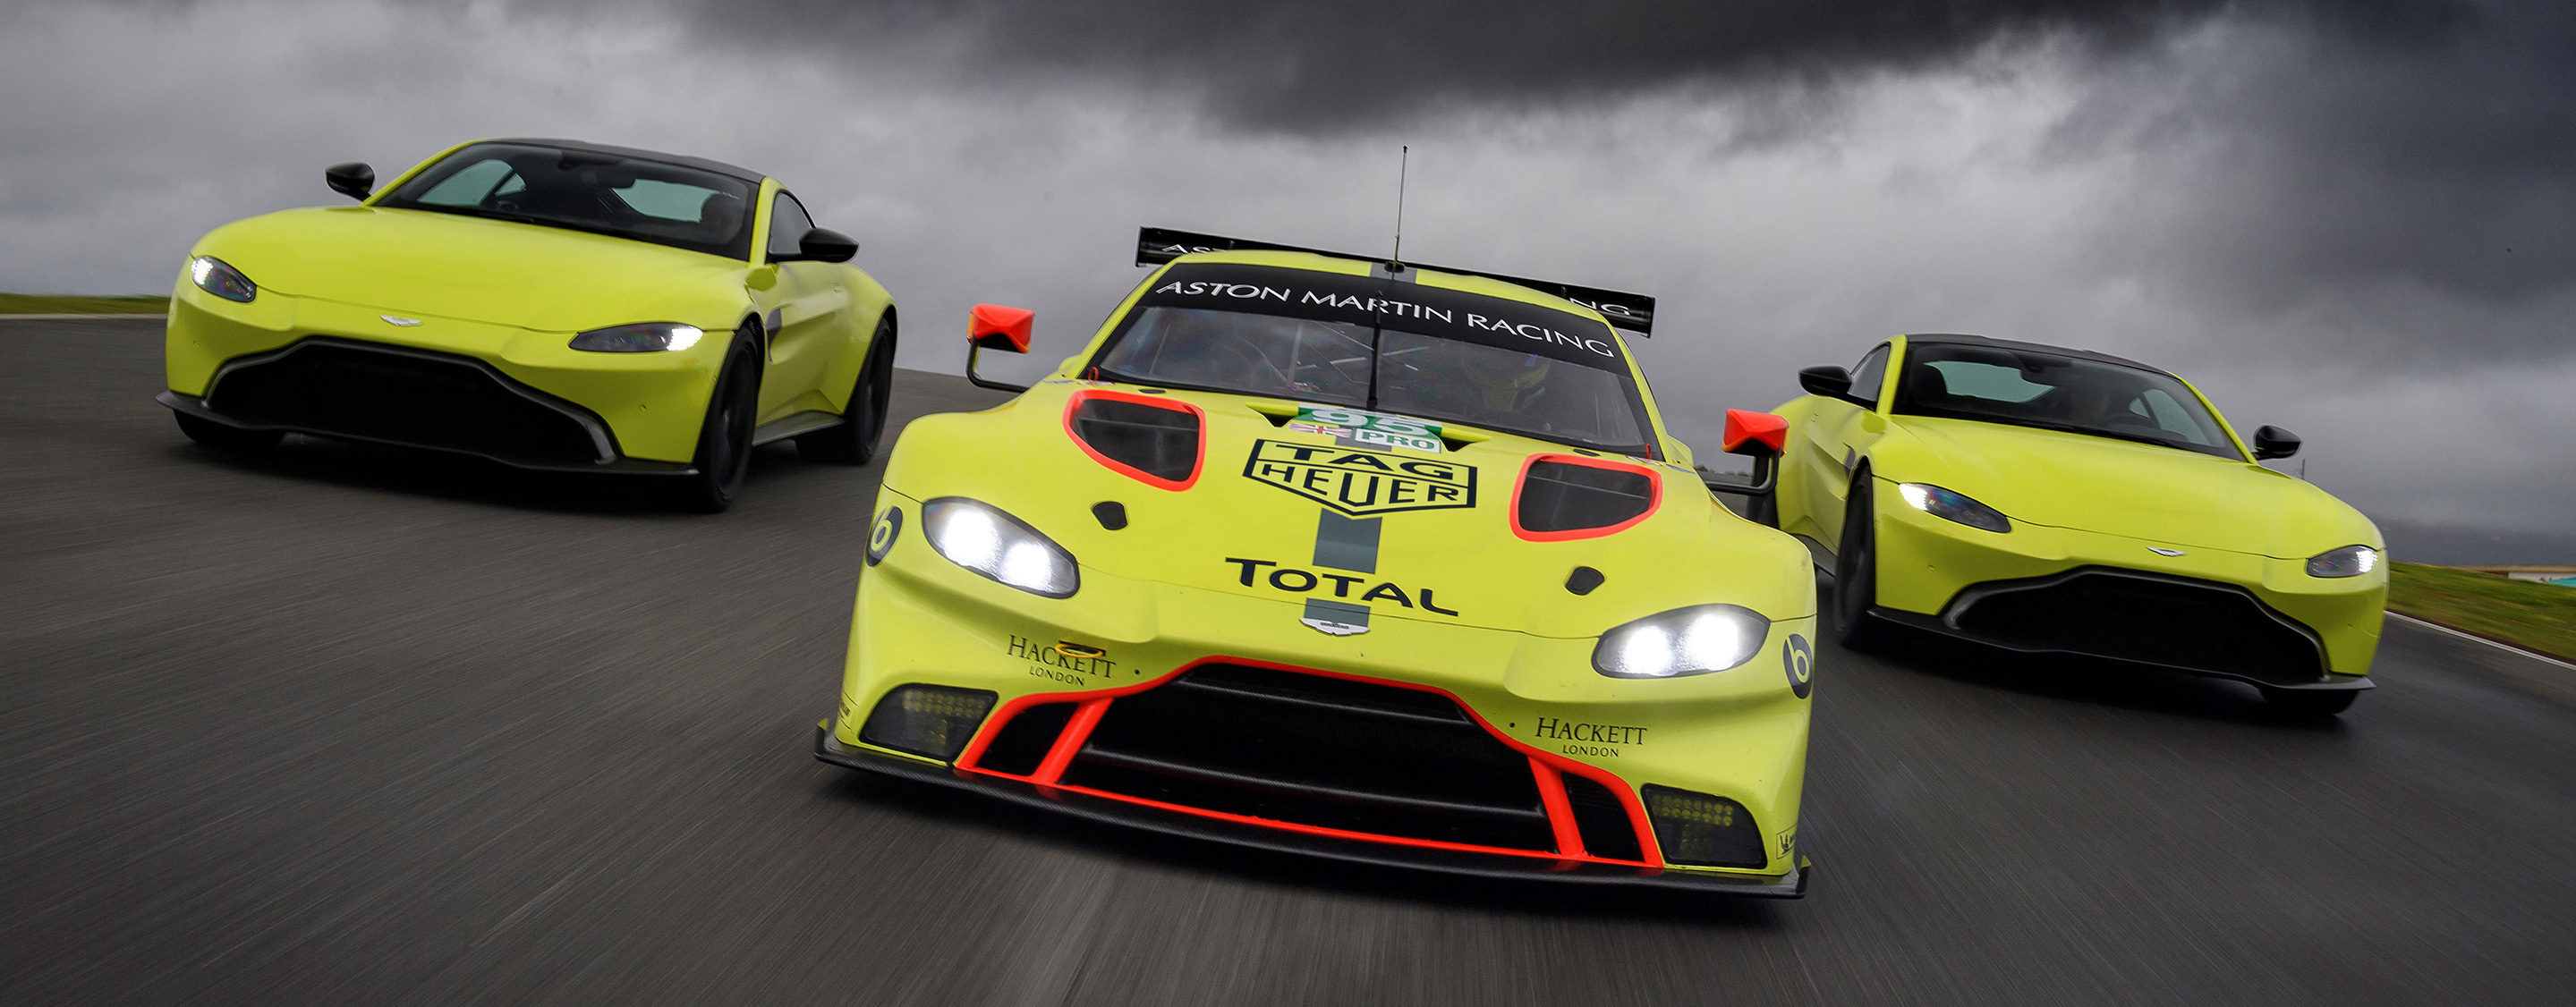 TrackWorthy - Aston Martin Racing Vantage GTE and Aston Martin Vantage